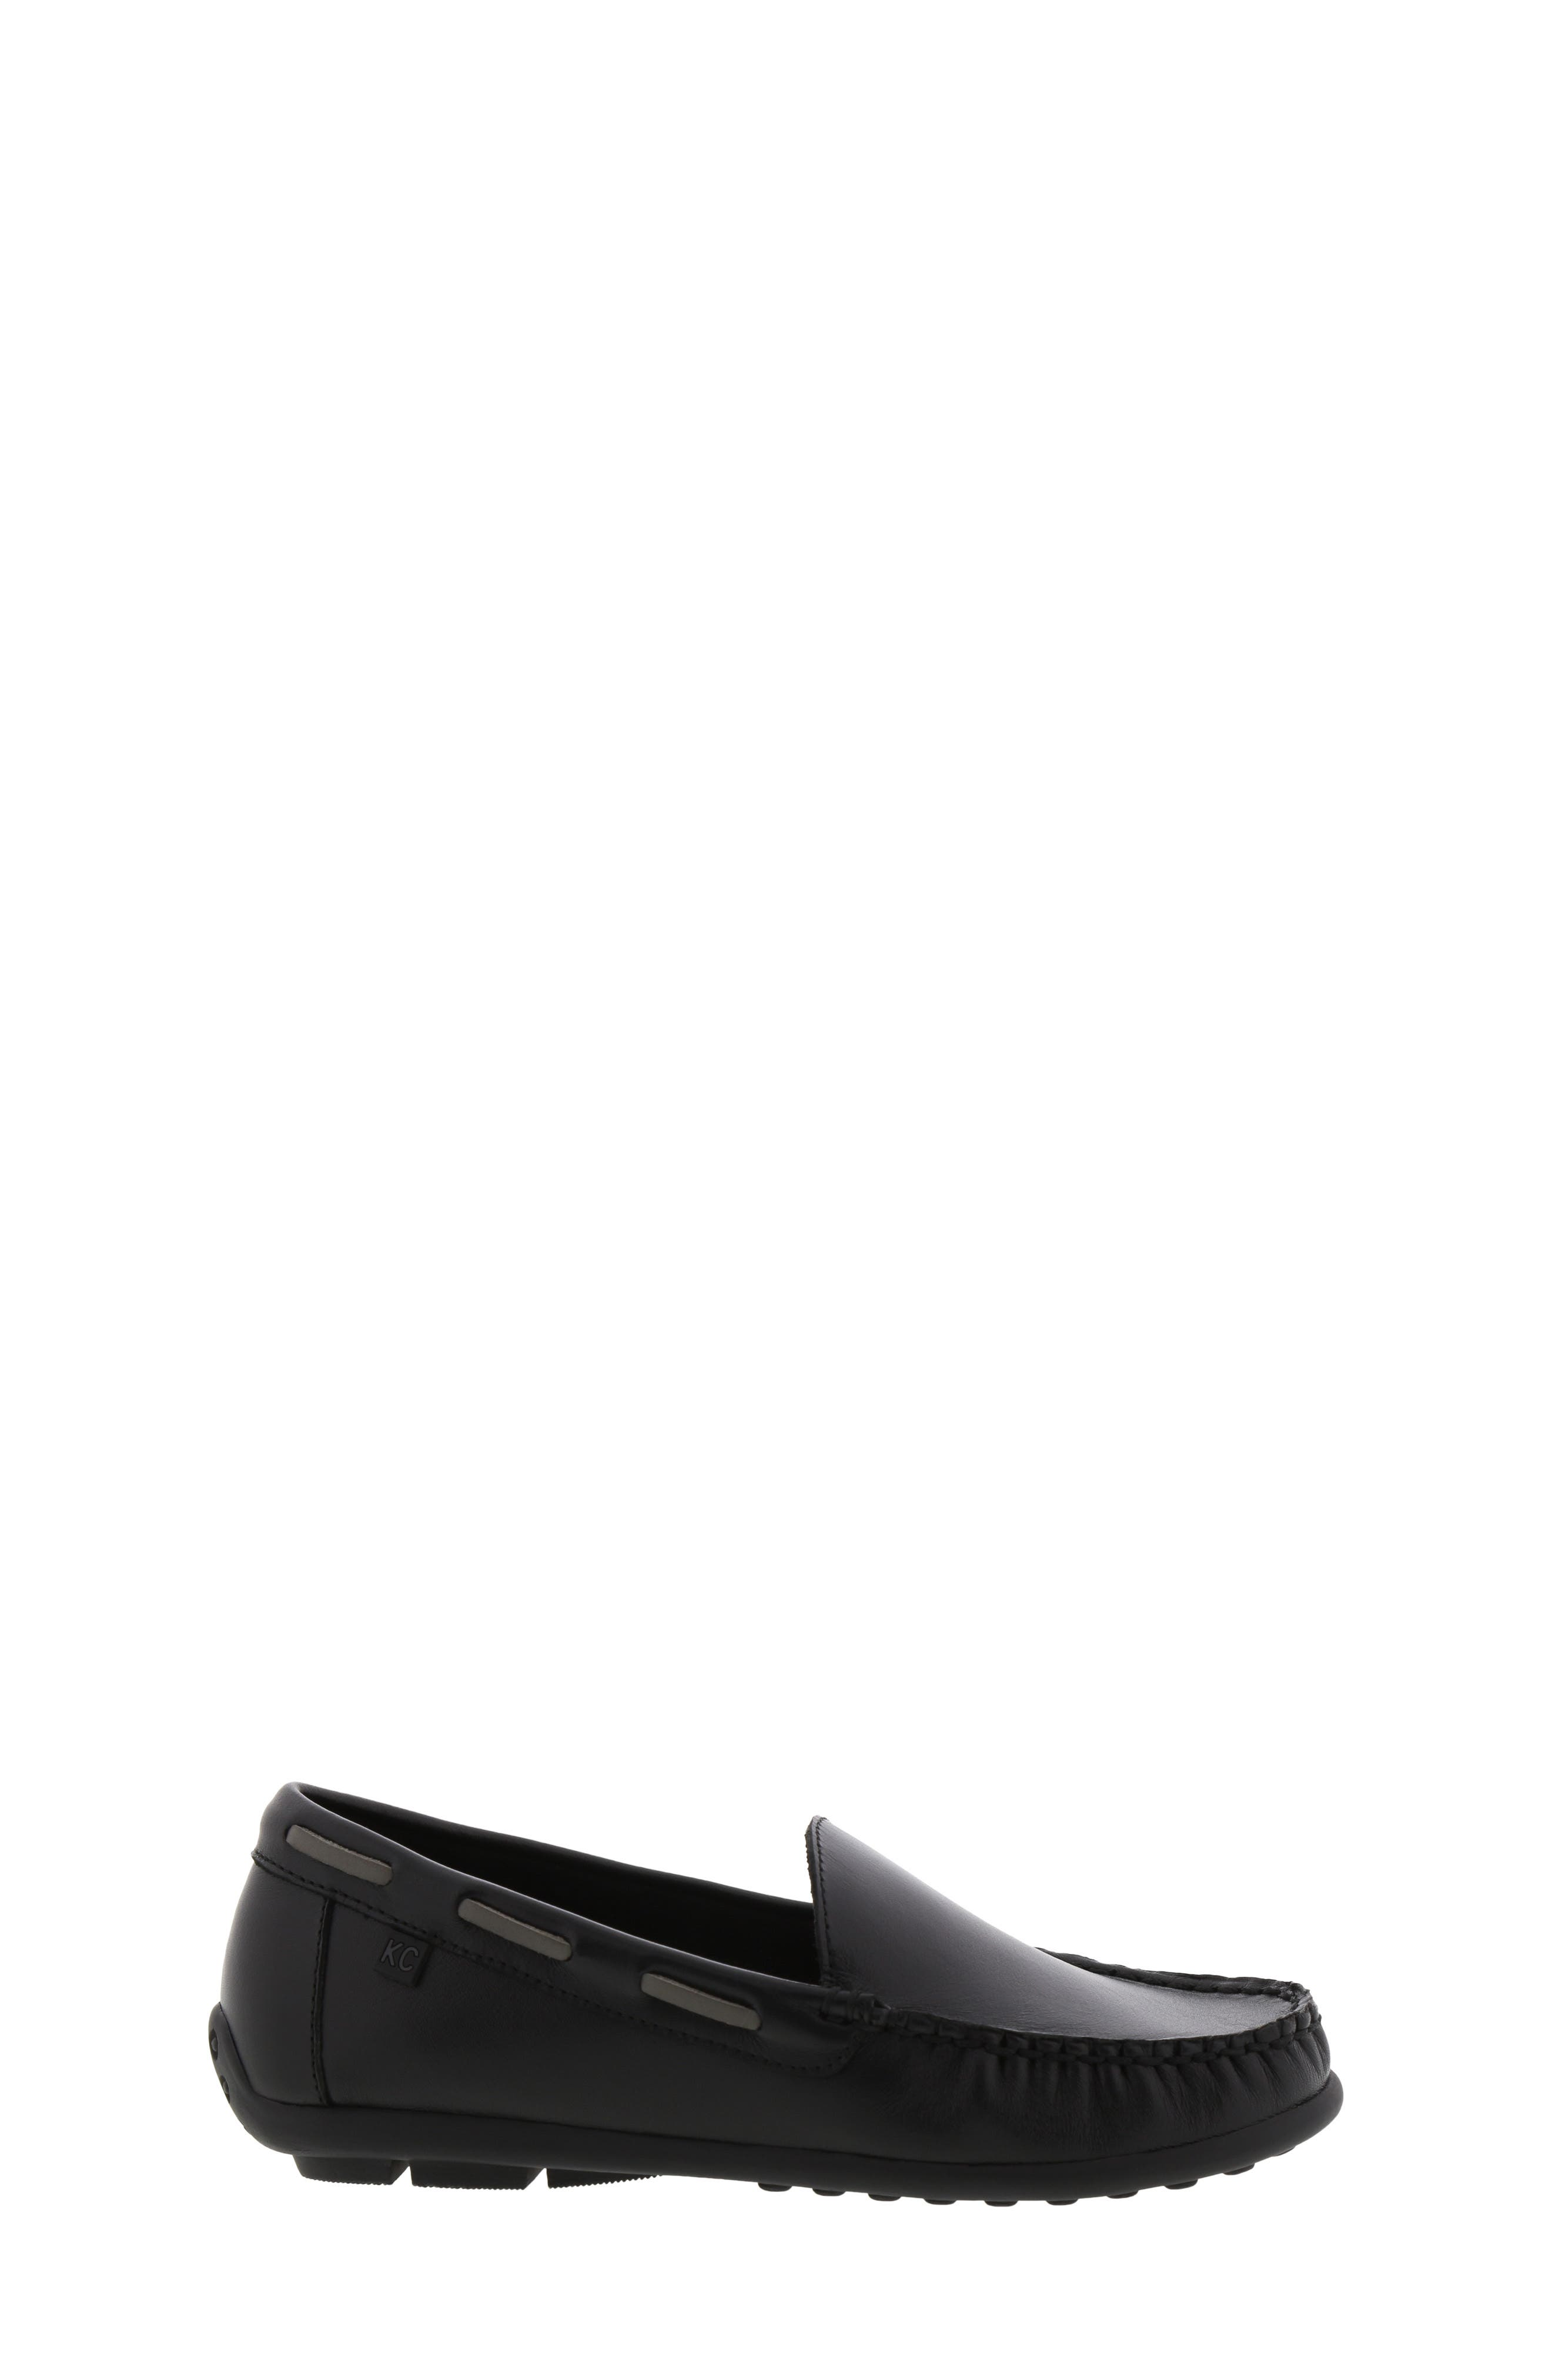 REACTION KENNETH COLE, Helio Shift Driving Moccasin, Alternate thumbnail 3, color, BLACK SMOOTH